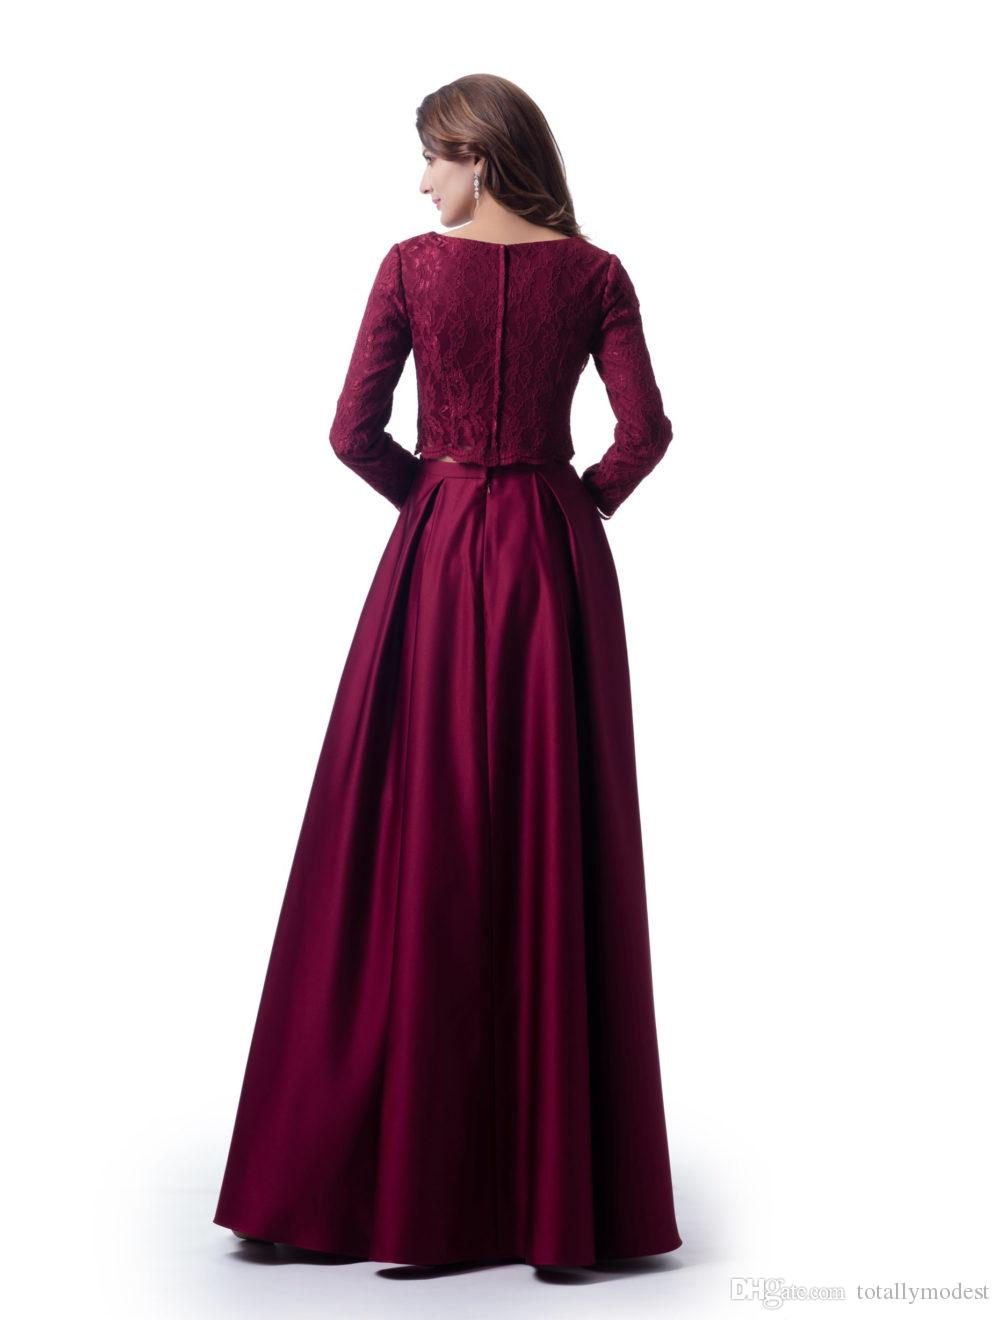 Dark Red Two Pieces Modest Bridesmaid Dresses With Long Sleeves Lace Top Satin Skirt With Pockets Wedding Party Dresses New